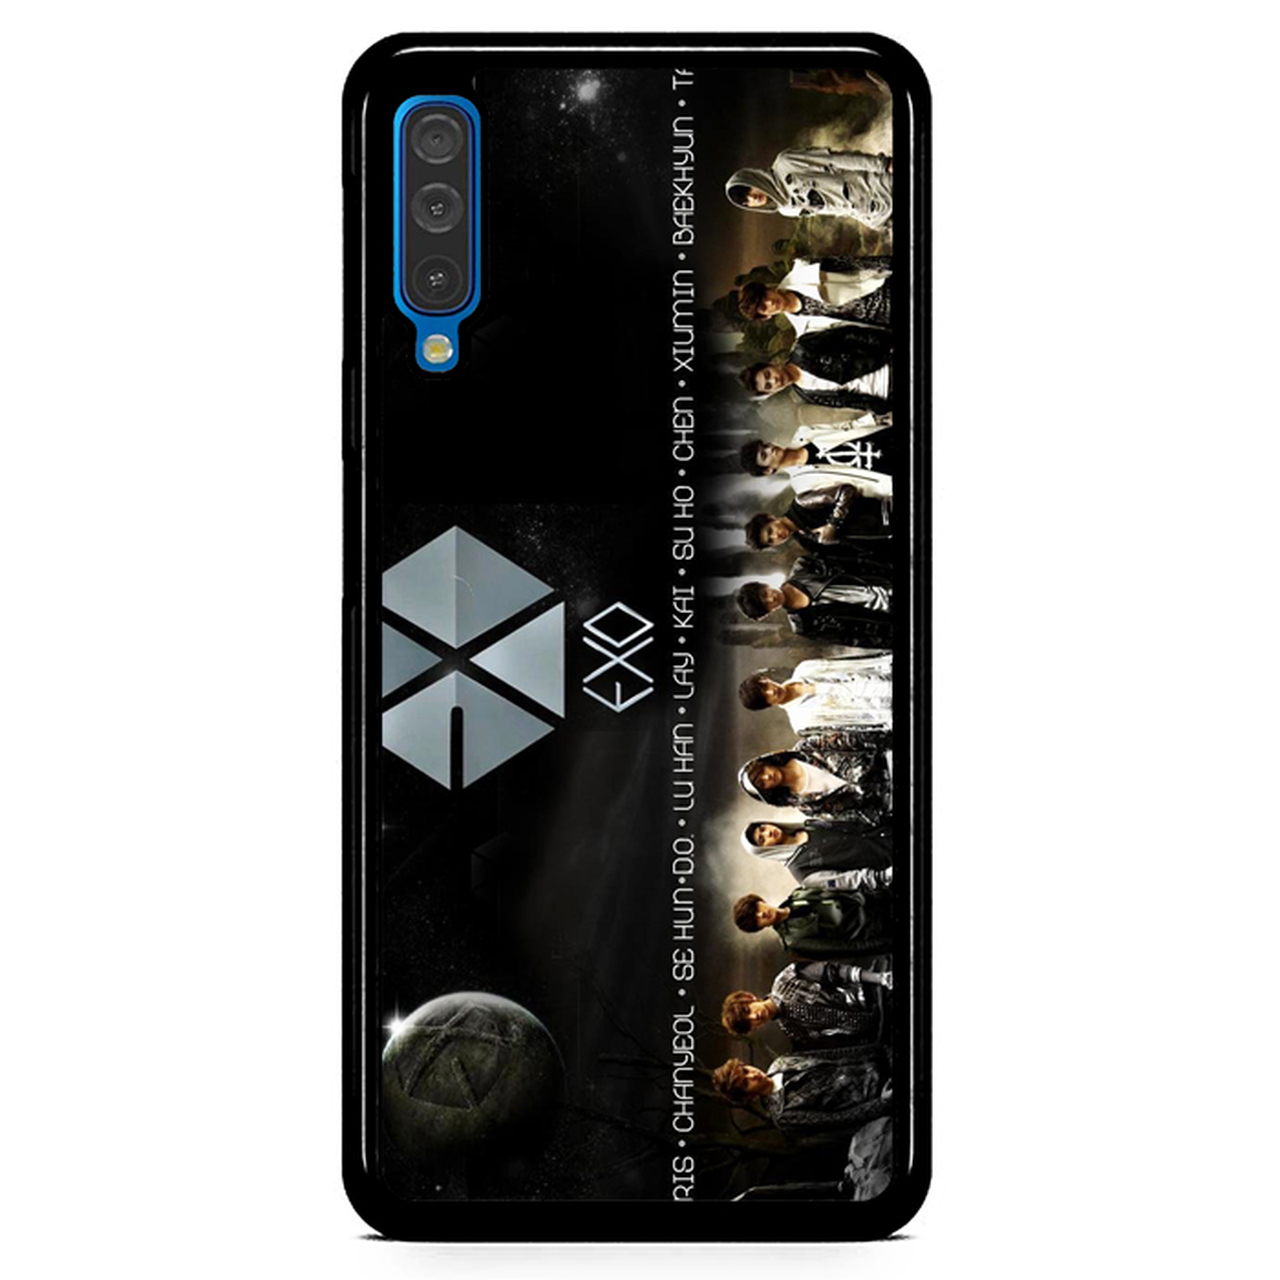 Exo Planet Wallpaper Y1793 Casing Samsung Galaxy A50 Premium Case